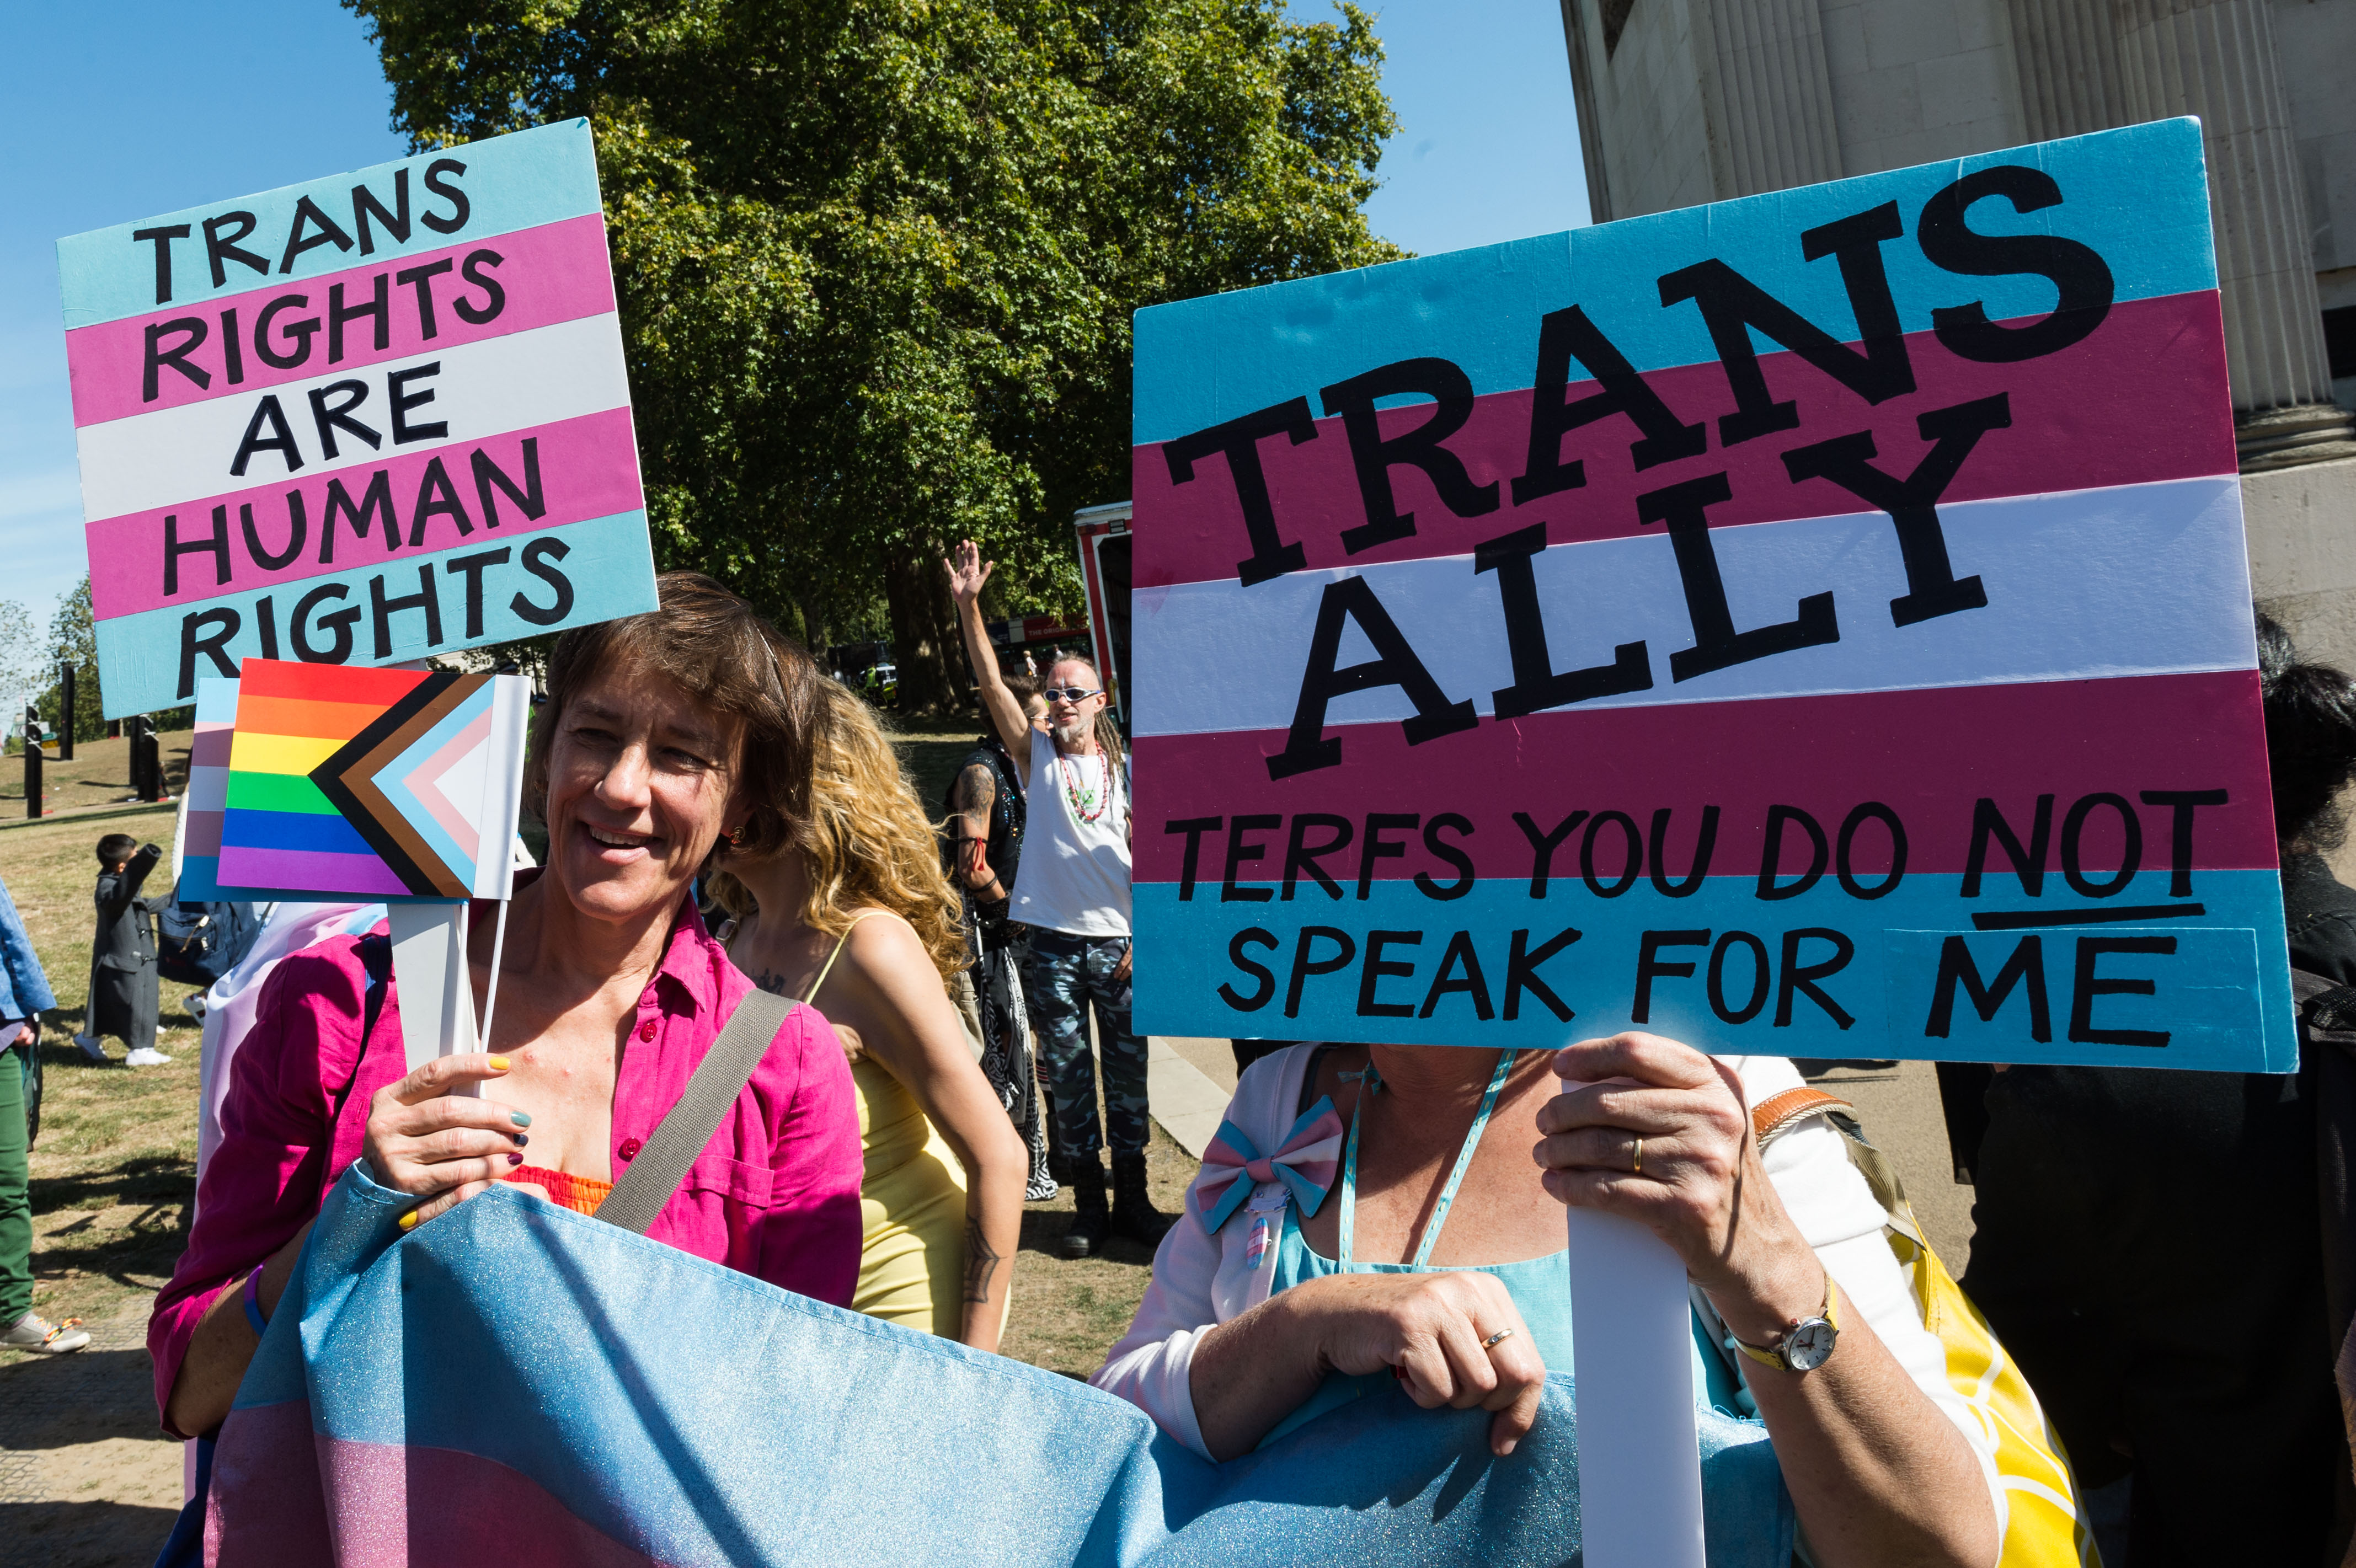 Young non-binary person throws down gauntlet for cis allies to 'risk their comfort and stand up for trans rights'